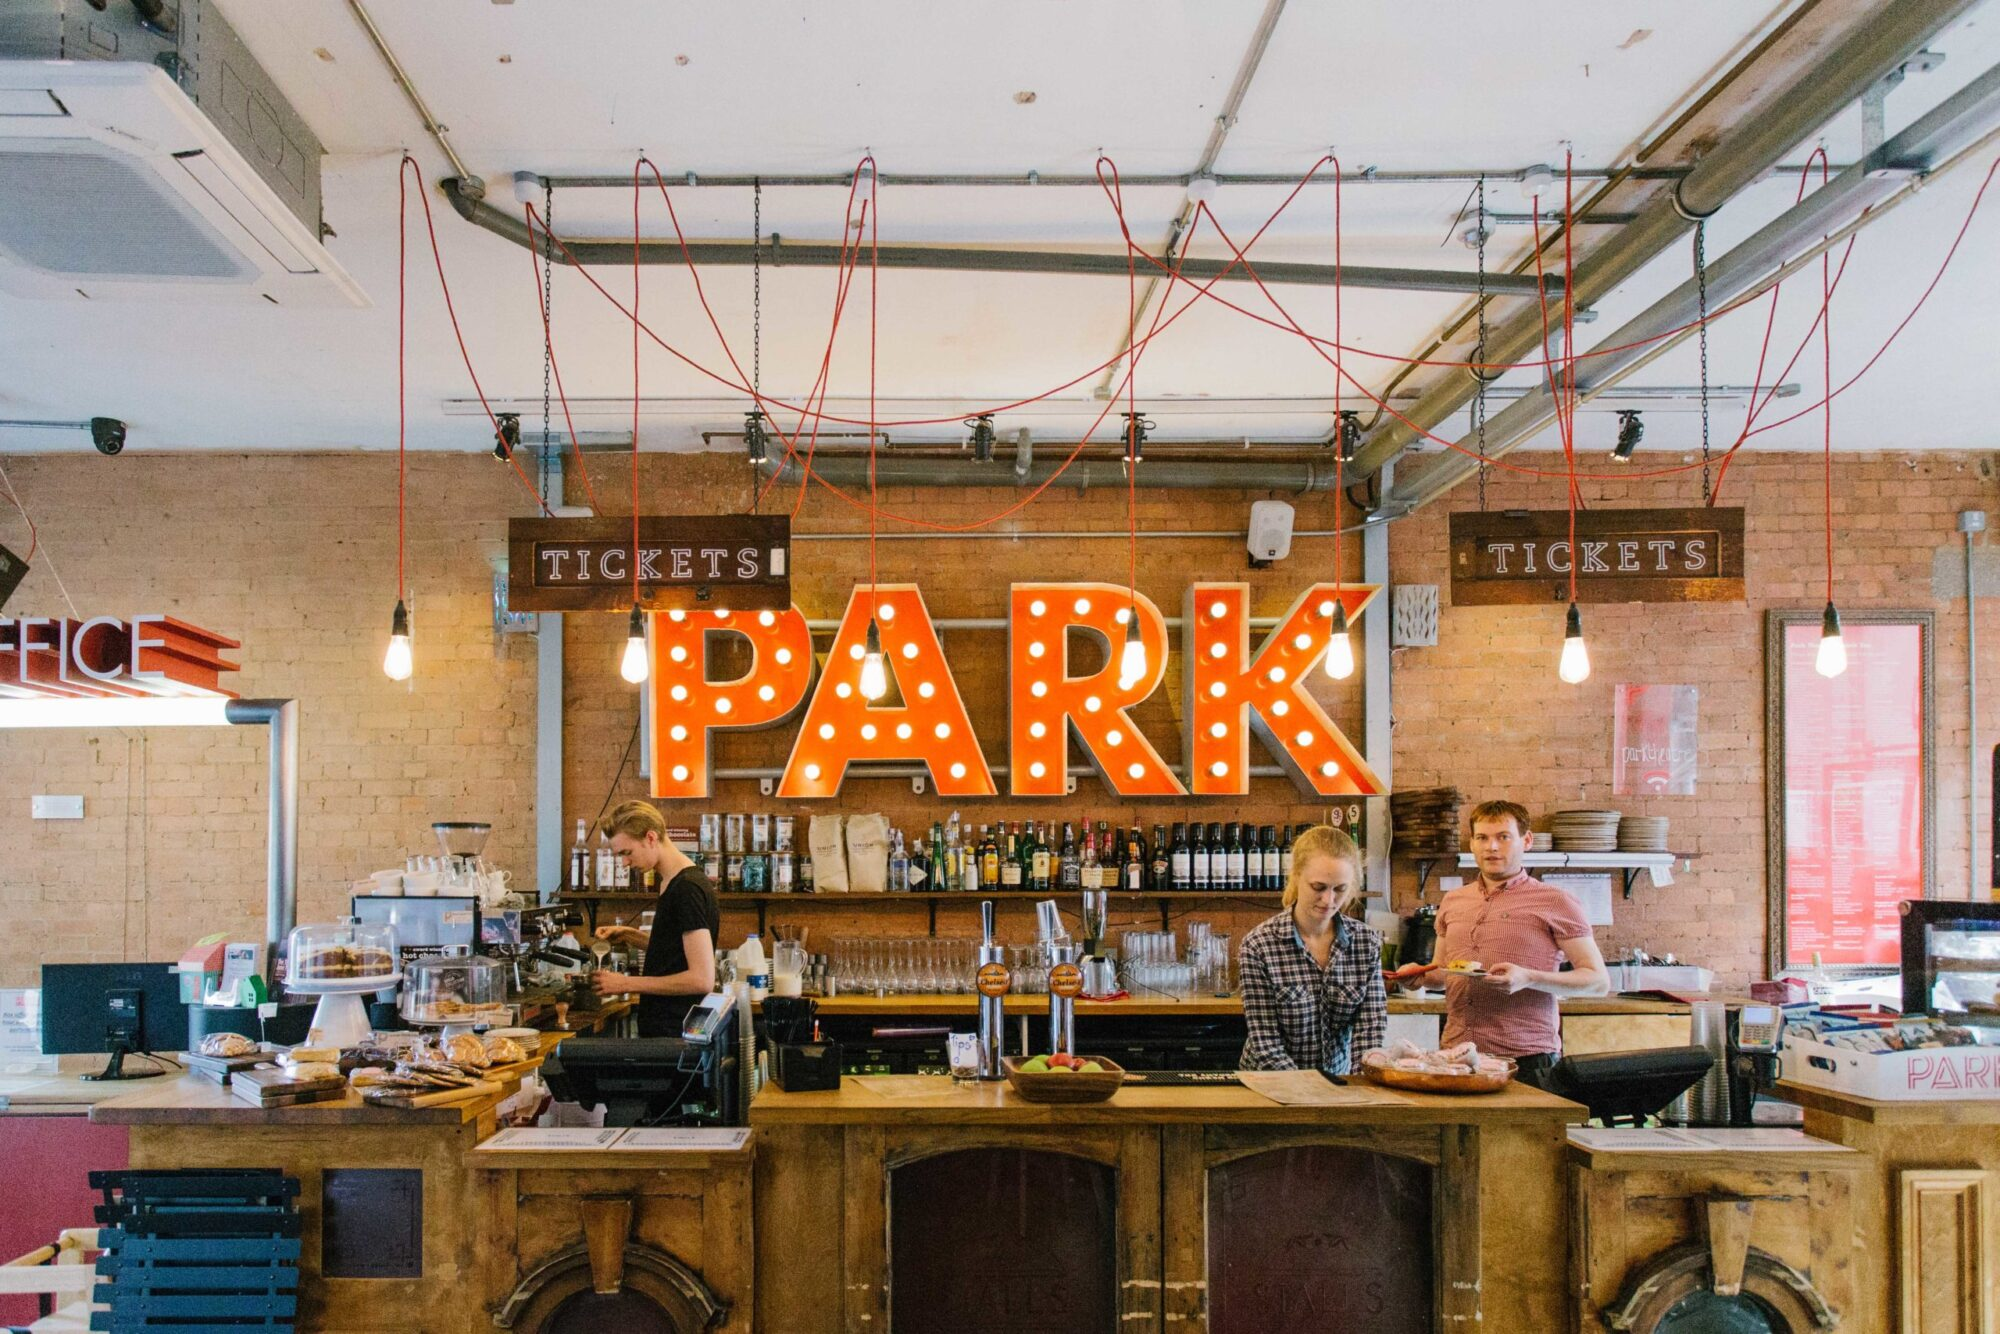 People working in the cafe at The Park Theatre in Stroud Green.